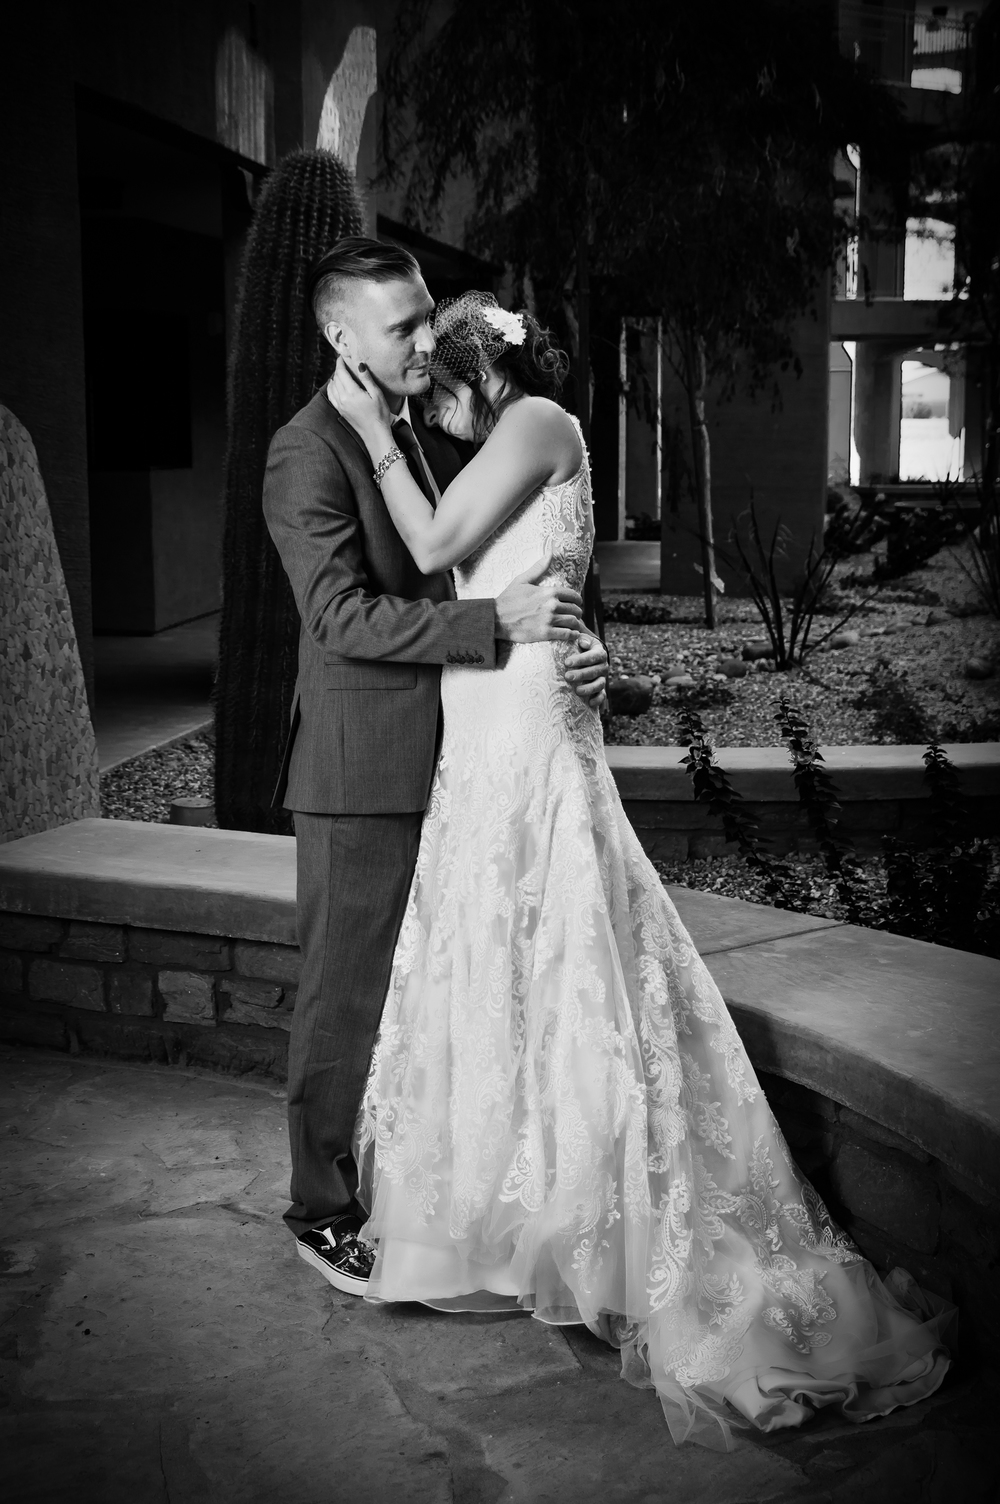 Nick_Cardona_Photography_Gilbert_AZ_wedding_Photographer_Blythe-8.jpg